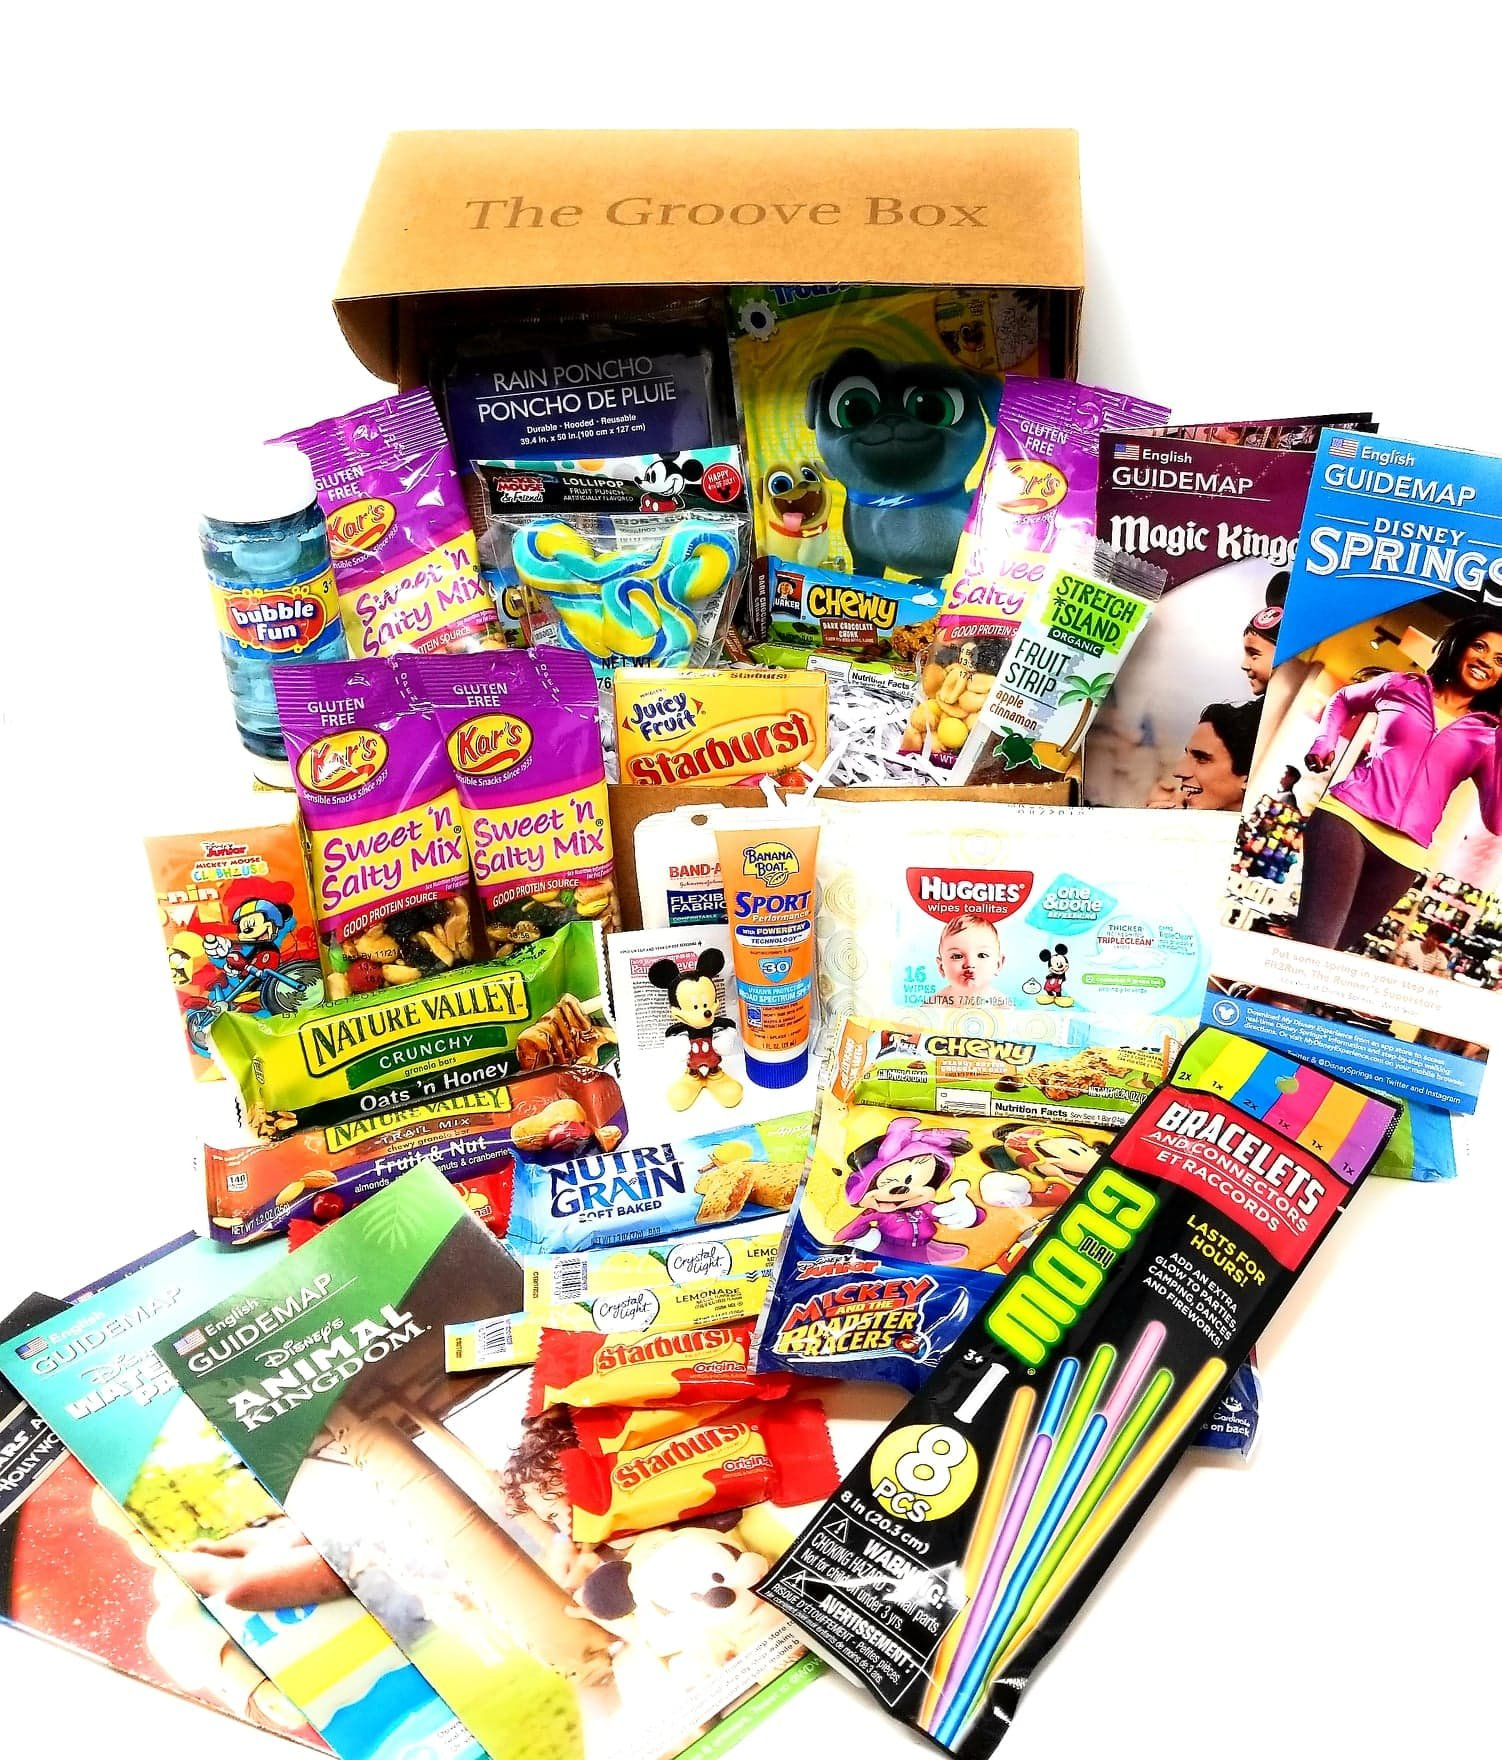 The Disney Theme Park Groove Box - Essential Park Disney Maps, Snacks & Necessities Perfect for your Disney World Vacation